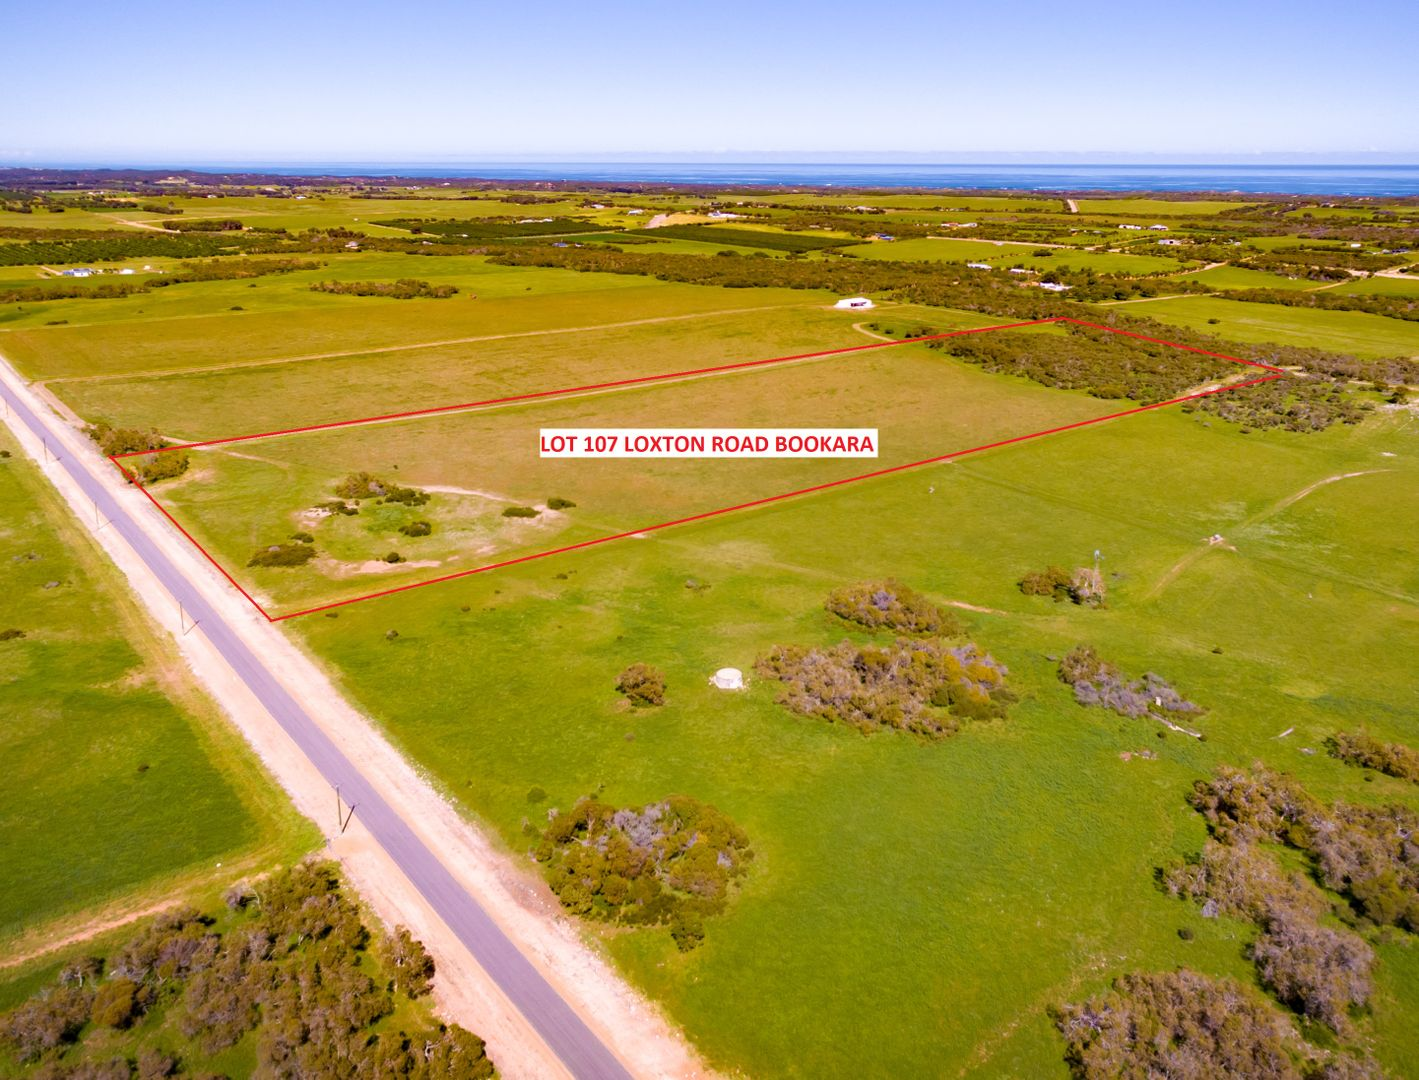 Lot 107 Loxton Drive, Bookara WA 6525, Image 1